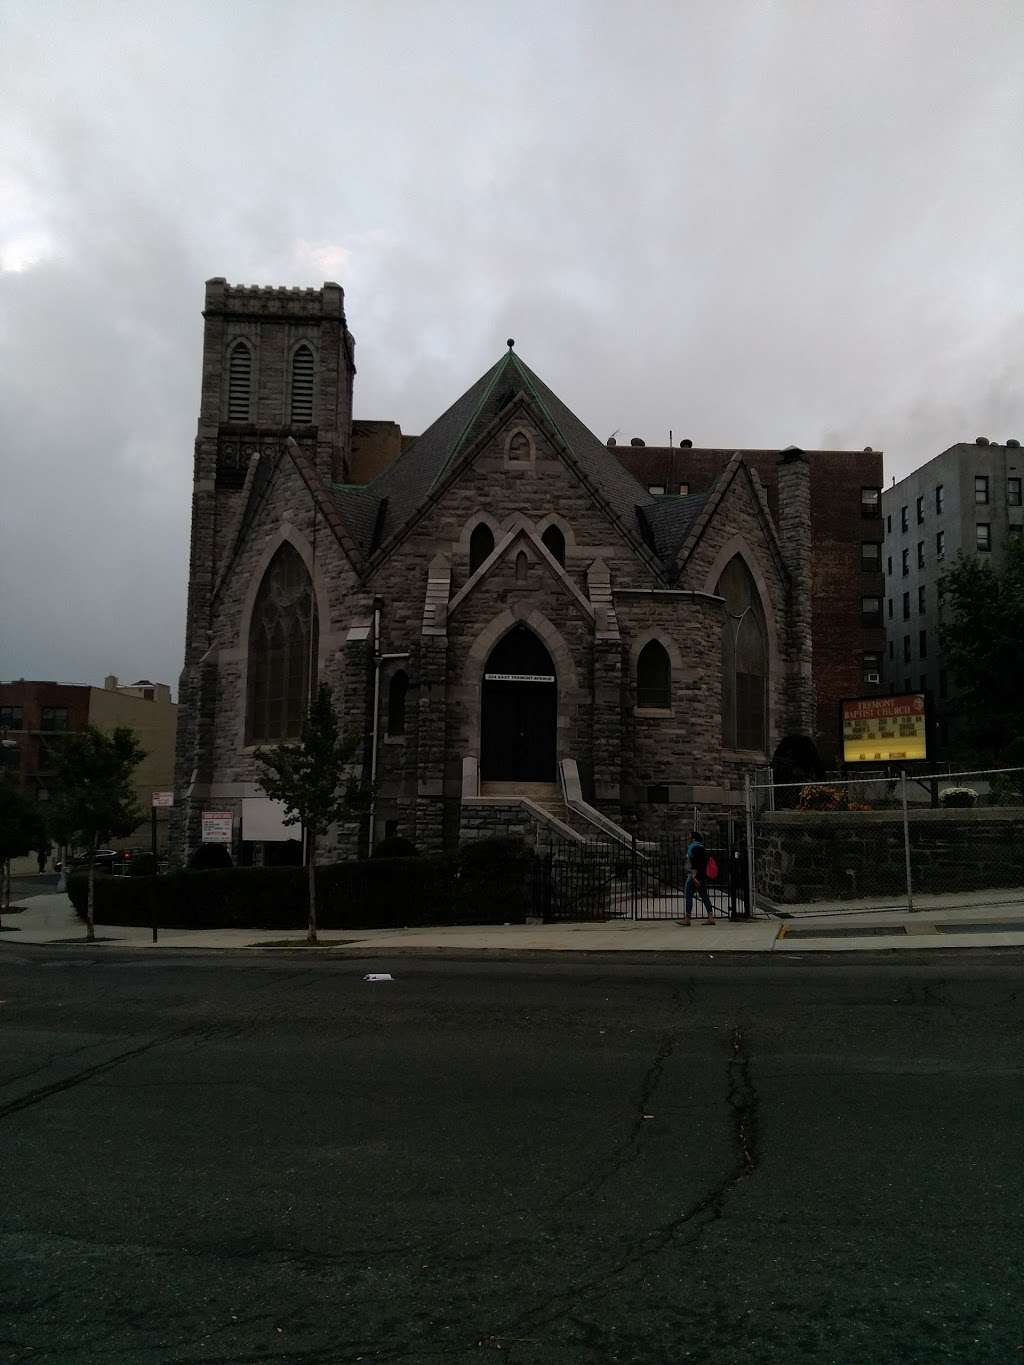 Tremont Baptist Church - church  | Photo 3 of 4 | Address: 324 E Tremont Ave, Bronx, NY 10457, USA | Phone: (718) 583-2620